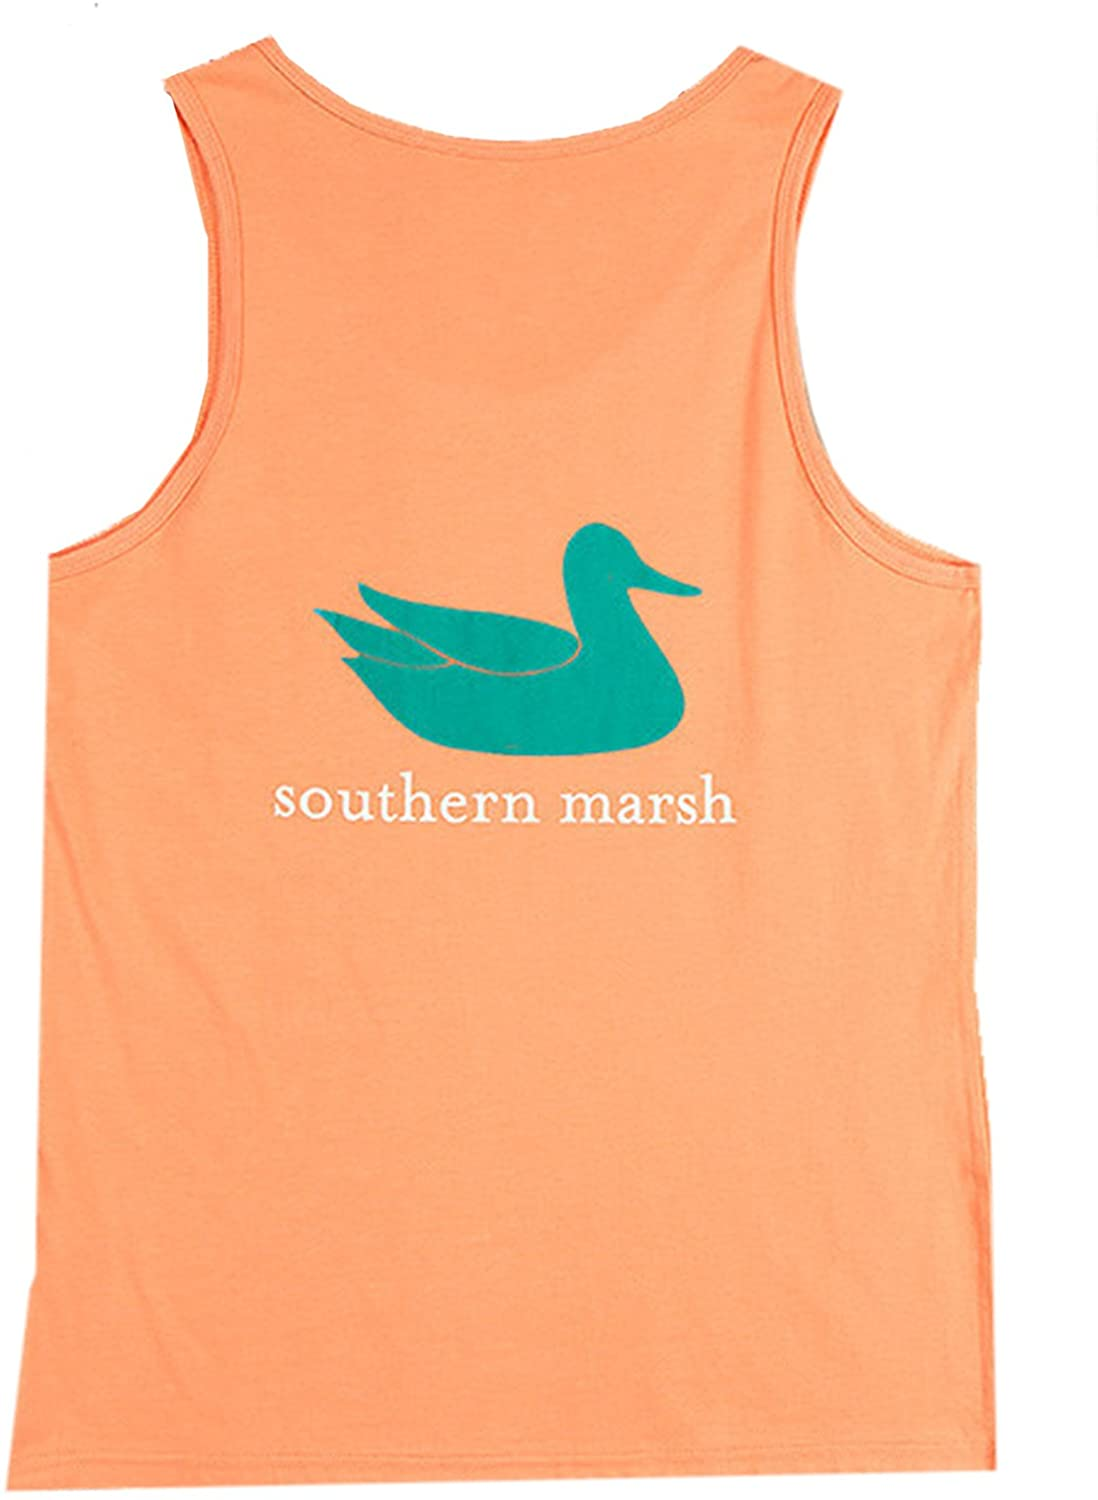 Authentic - Tank, Melon with Squall Green, Small